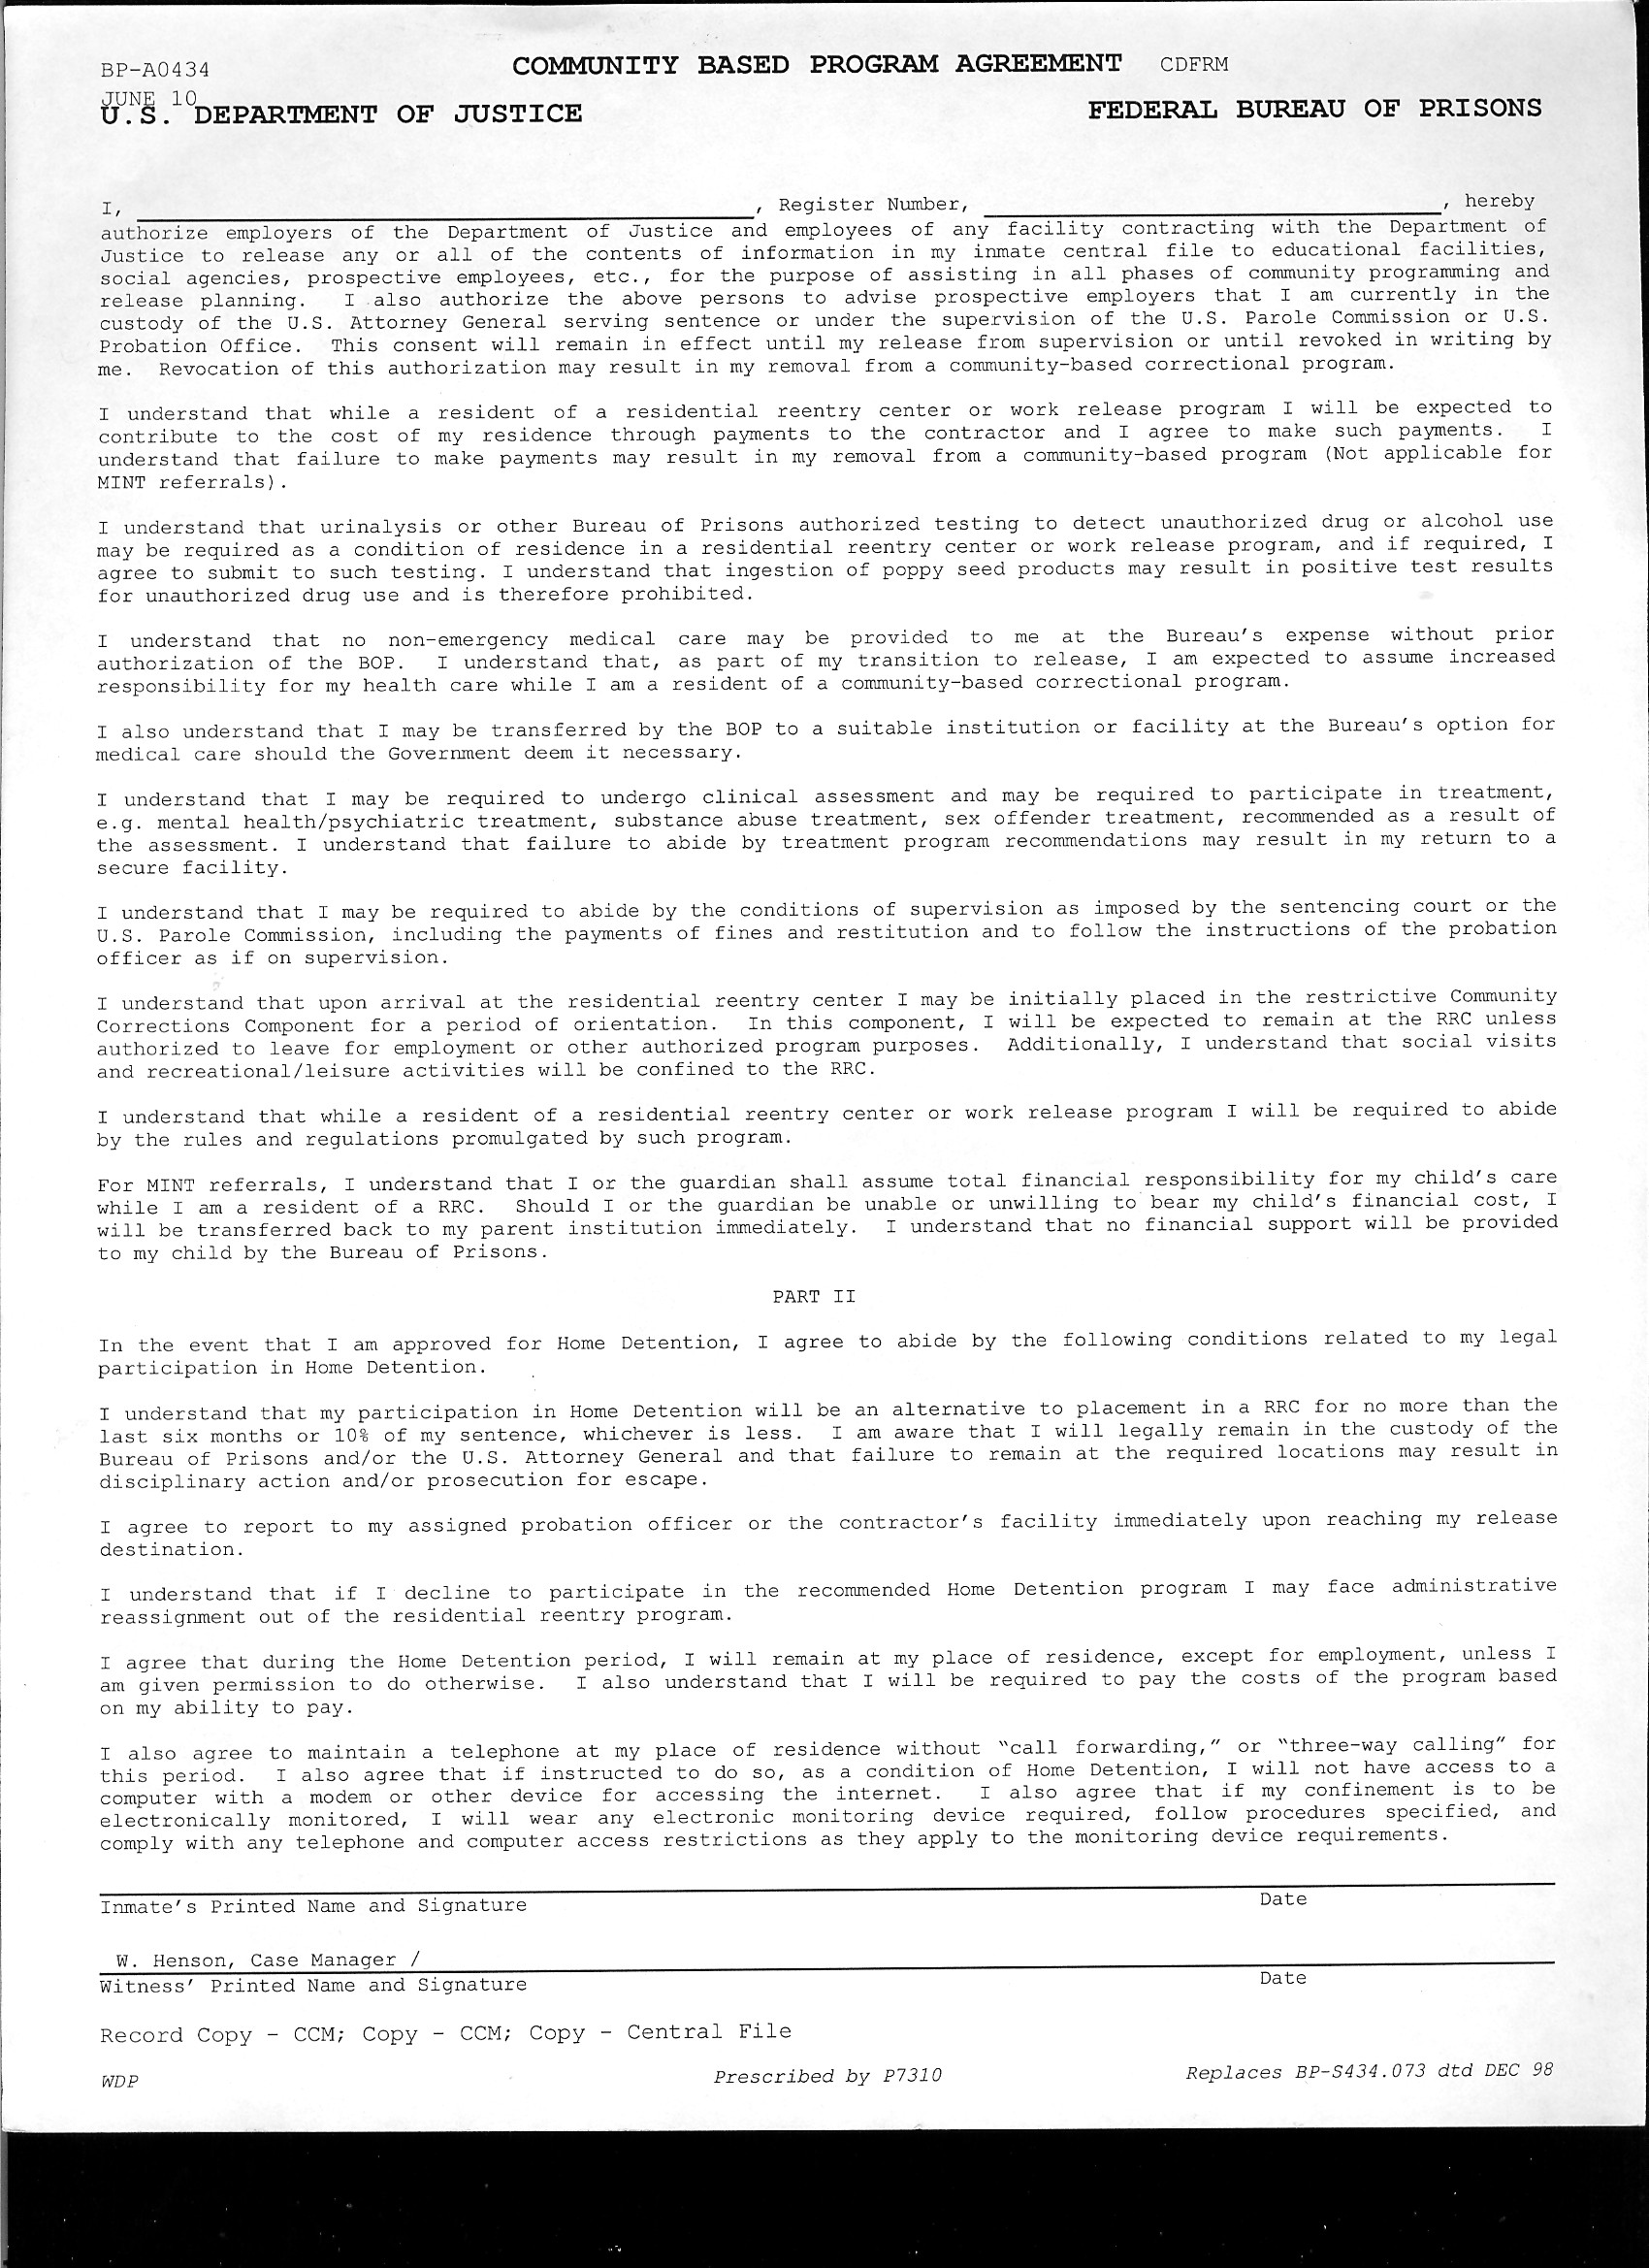 community based Program Agreement